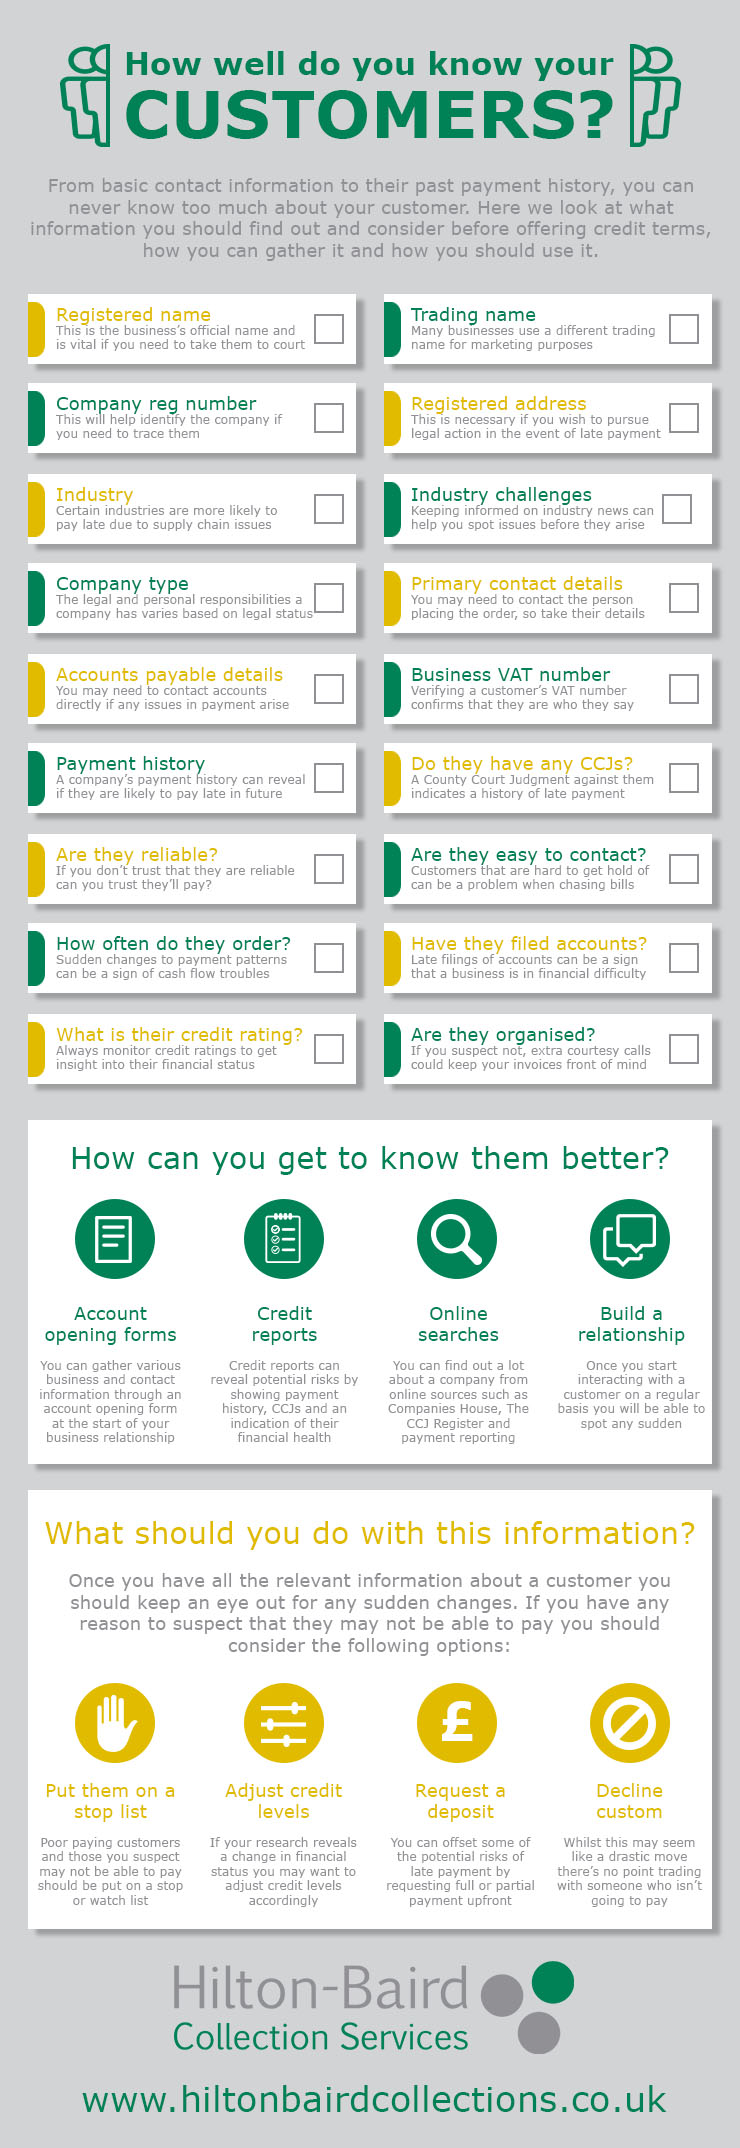 INFOGRAPHIC: How well do you know your customers